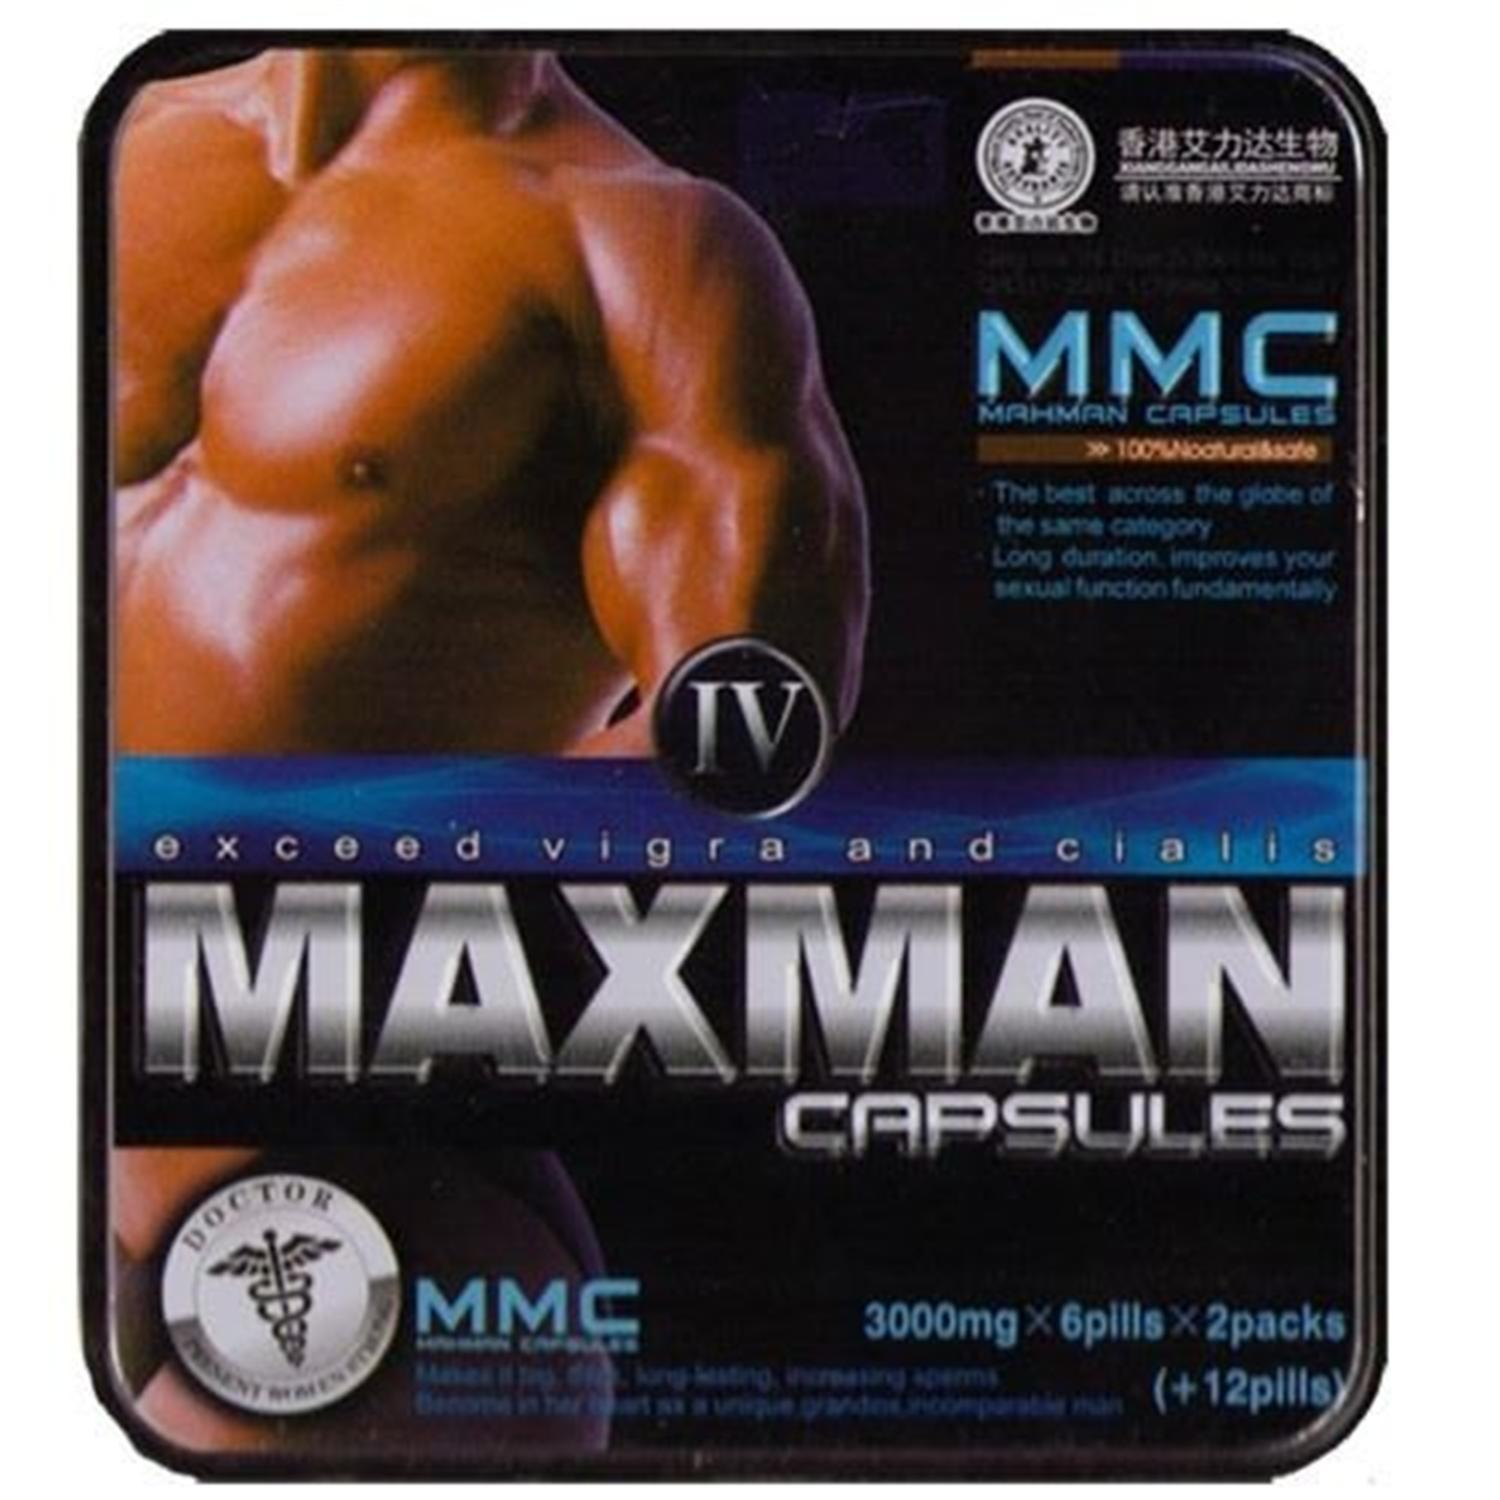 Maxman IV Capsule 100% Safe and Natural Herbal Supplement  For Men